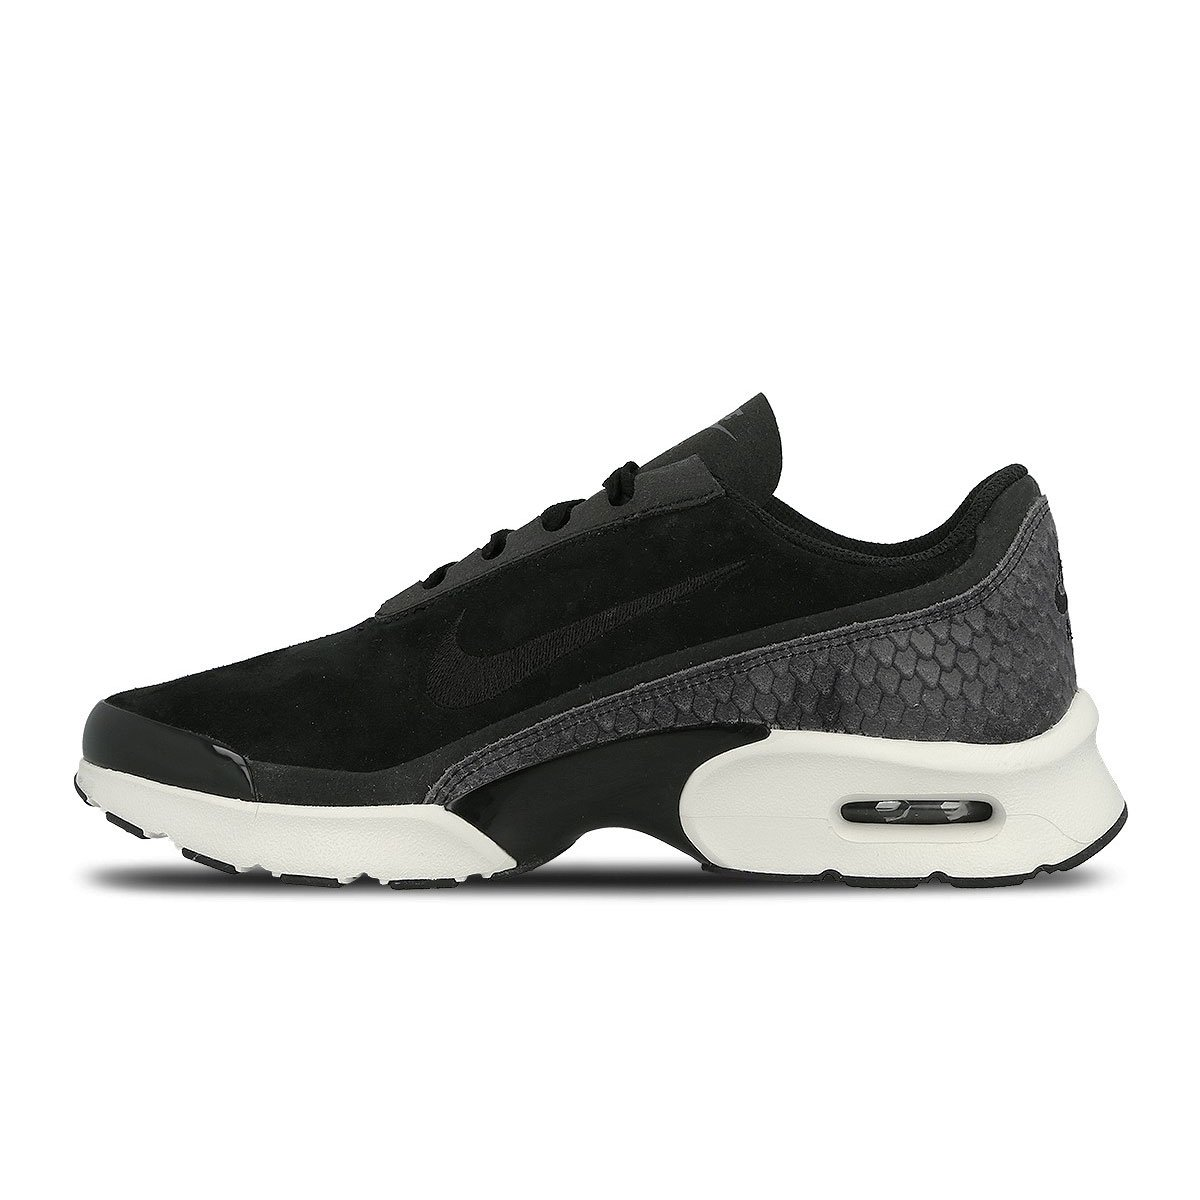 9f2073d7e7 Nike Air Max Jewell Premium Womens Trainers: Amazon.co.uk: Shoes & Bags